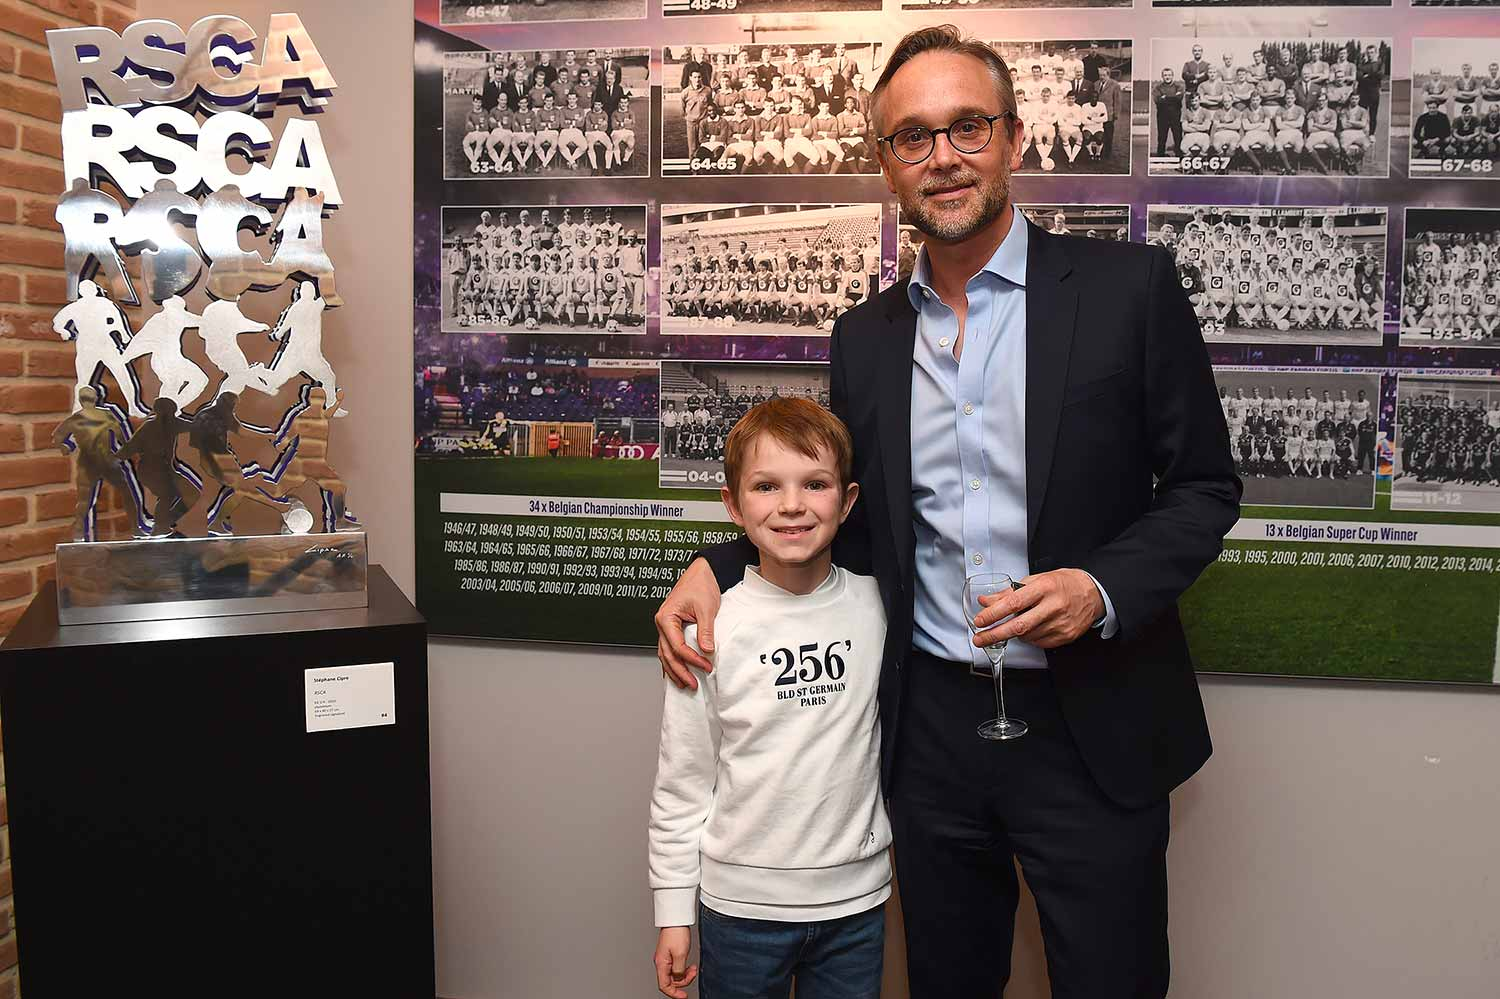 cipre_artiste_sculpture_contemporain_event_play_it_art_thomas_meunier_stadium_foot_aluminium_stade_anderlecht_brussels_guest_invites_dad_son.jpg